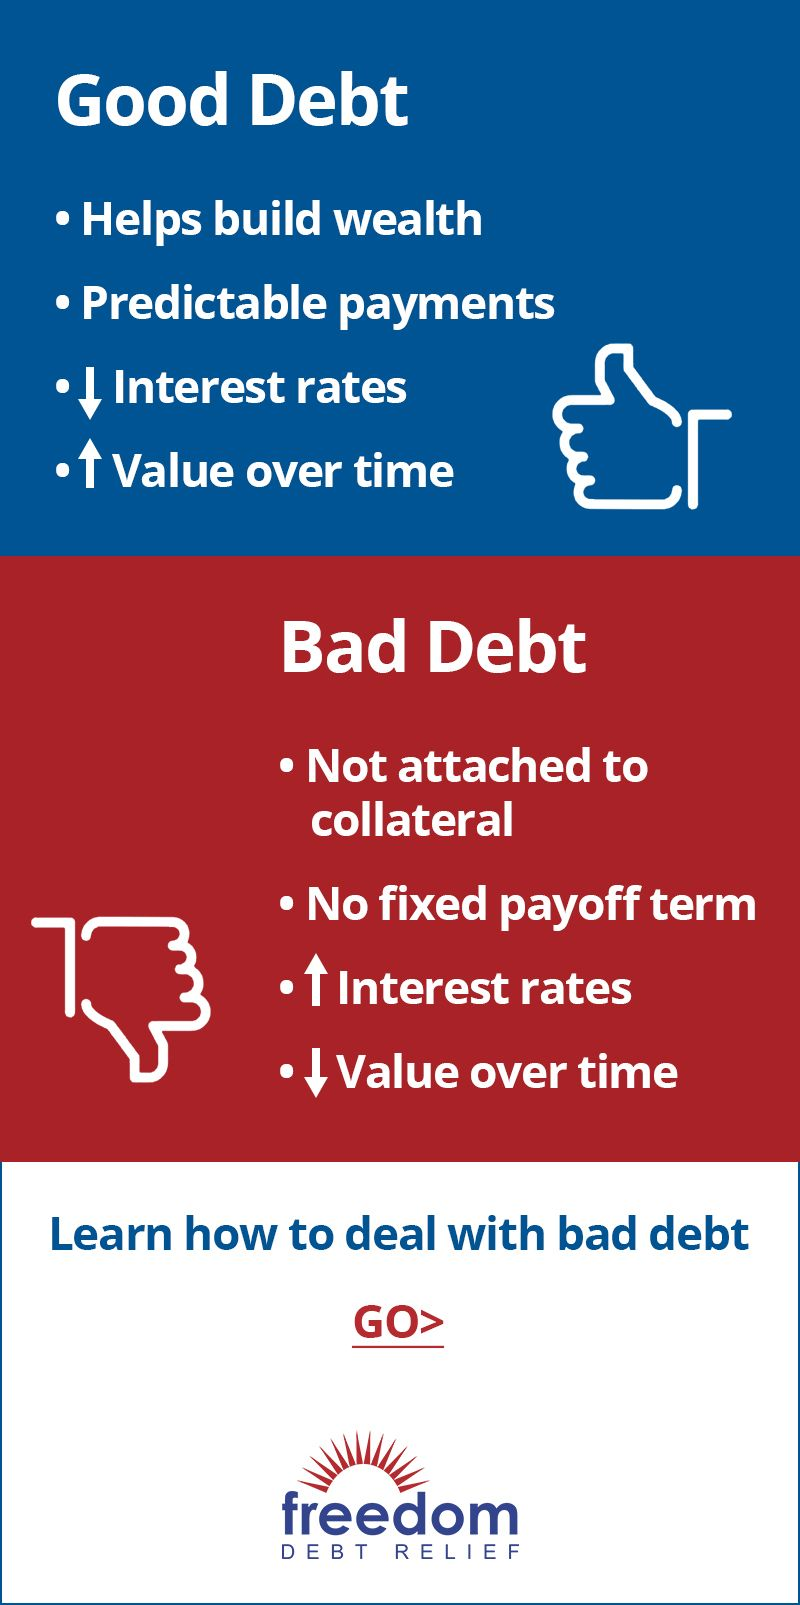 How to Tell the Difference Between Good Debt and Bad Debt